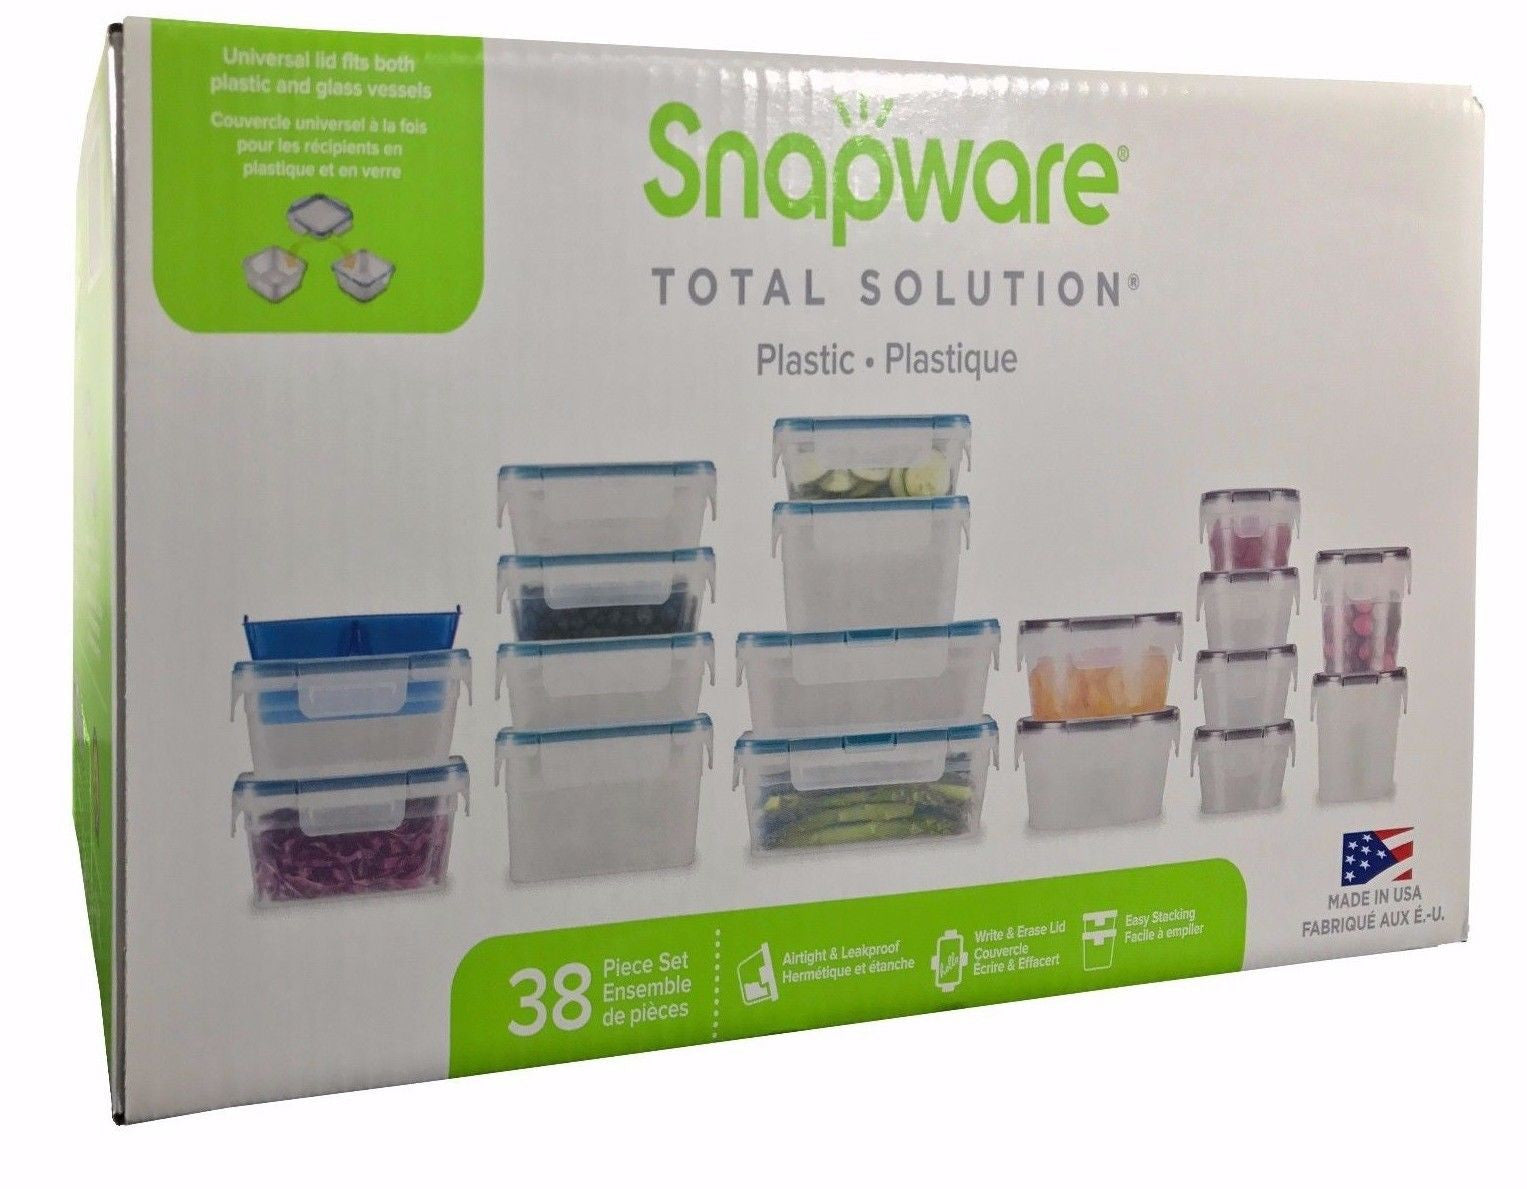 Snapware Total Solution Plastic Food Keeper Set Airtight & Leakproof 38 Pieces